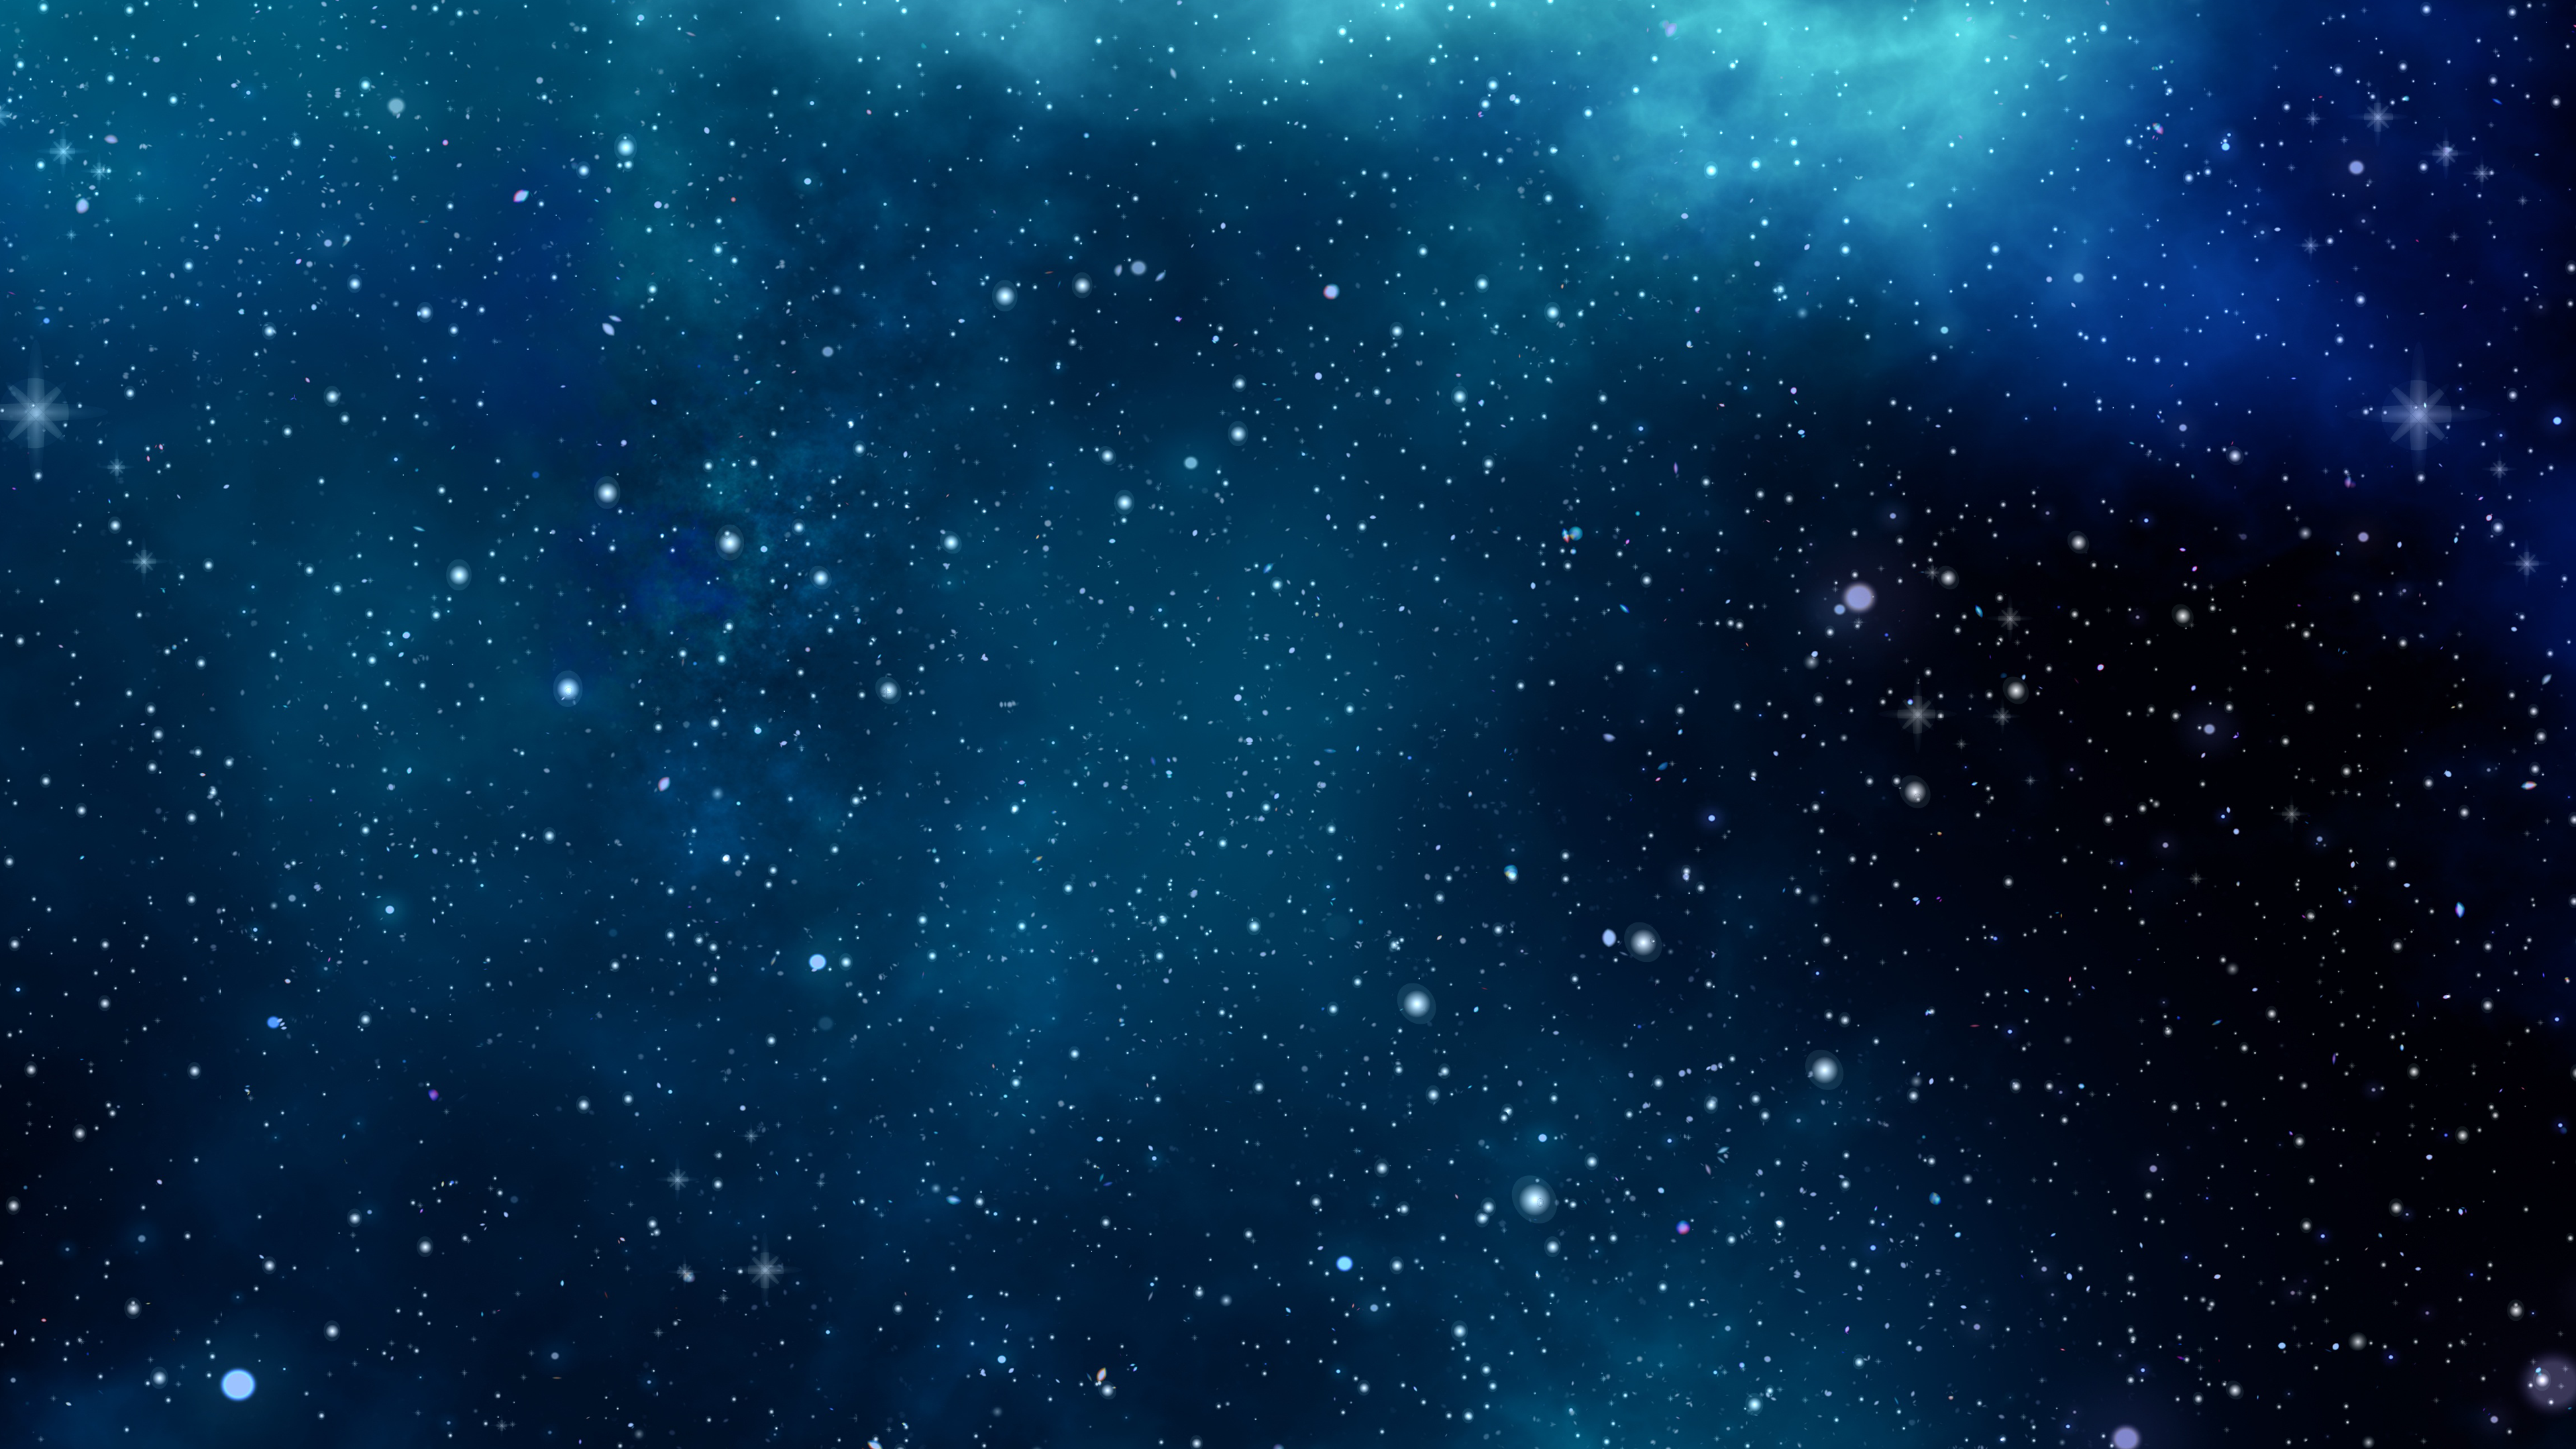 pxwall blue space 4k wallpaper download http www pxwall com blue